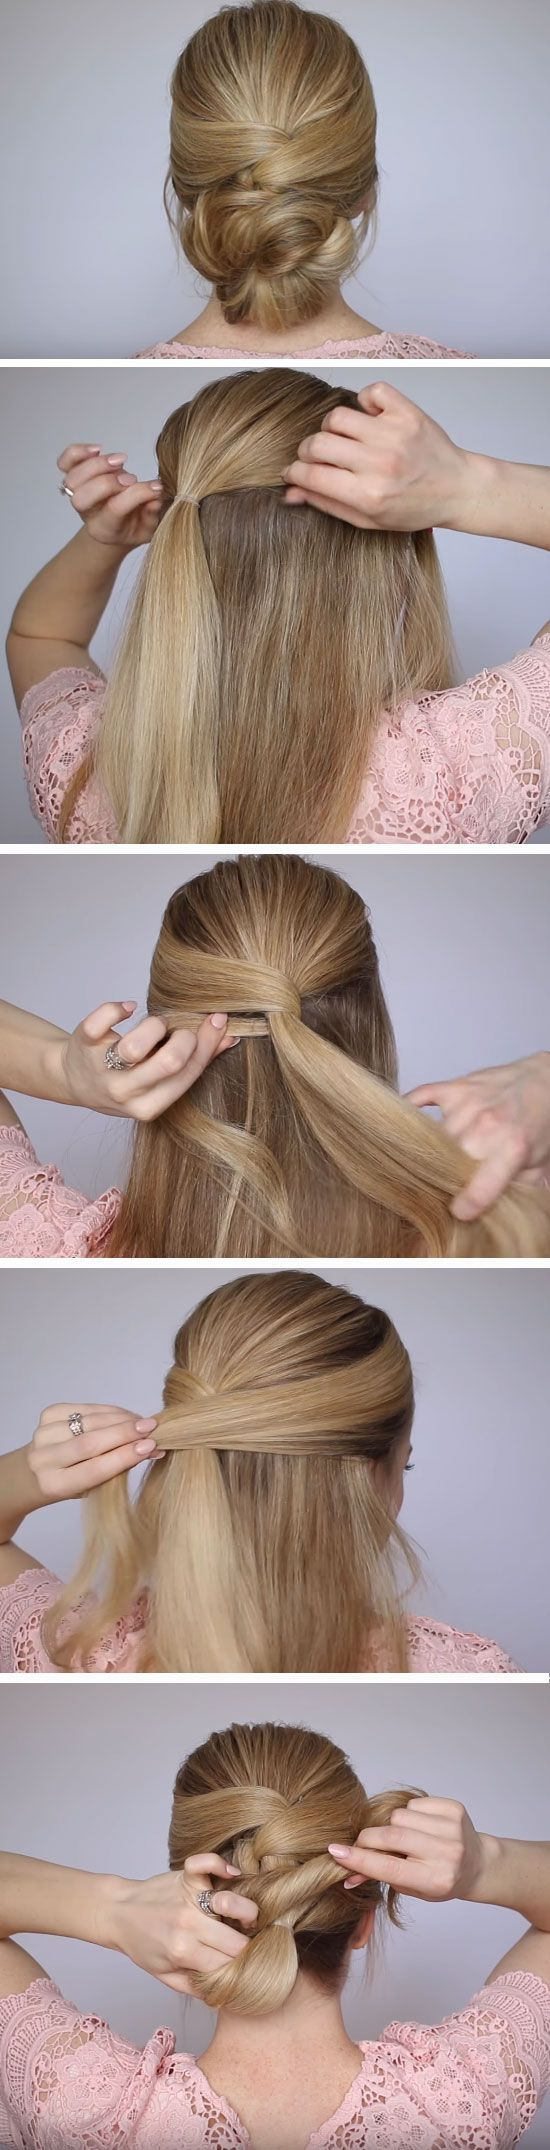 Easy Diy Prom Hairstyles For Long Hair Prom Hair Medium Medium Hair Styles Easy Homecoming Hairstyles